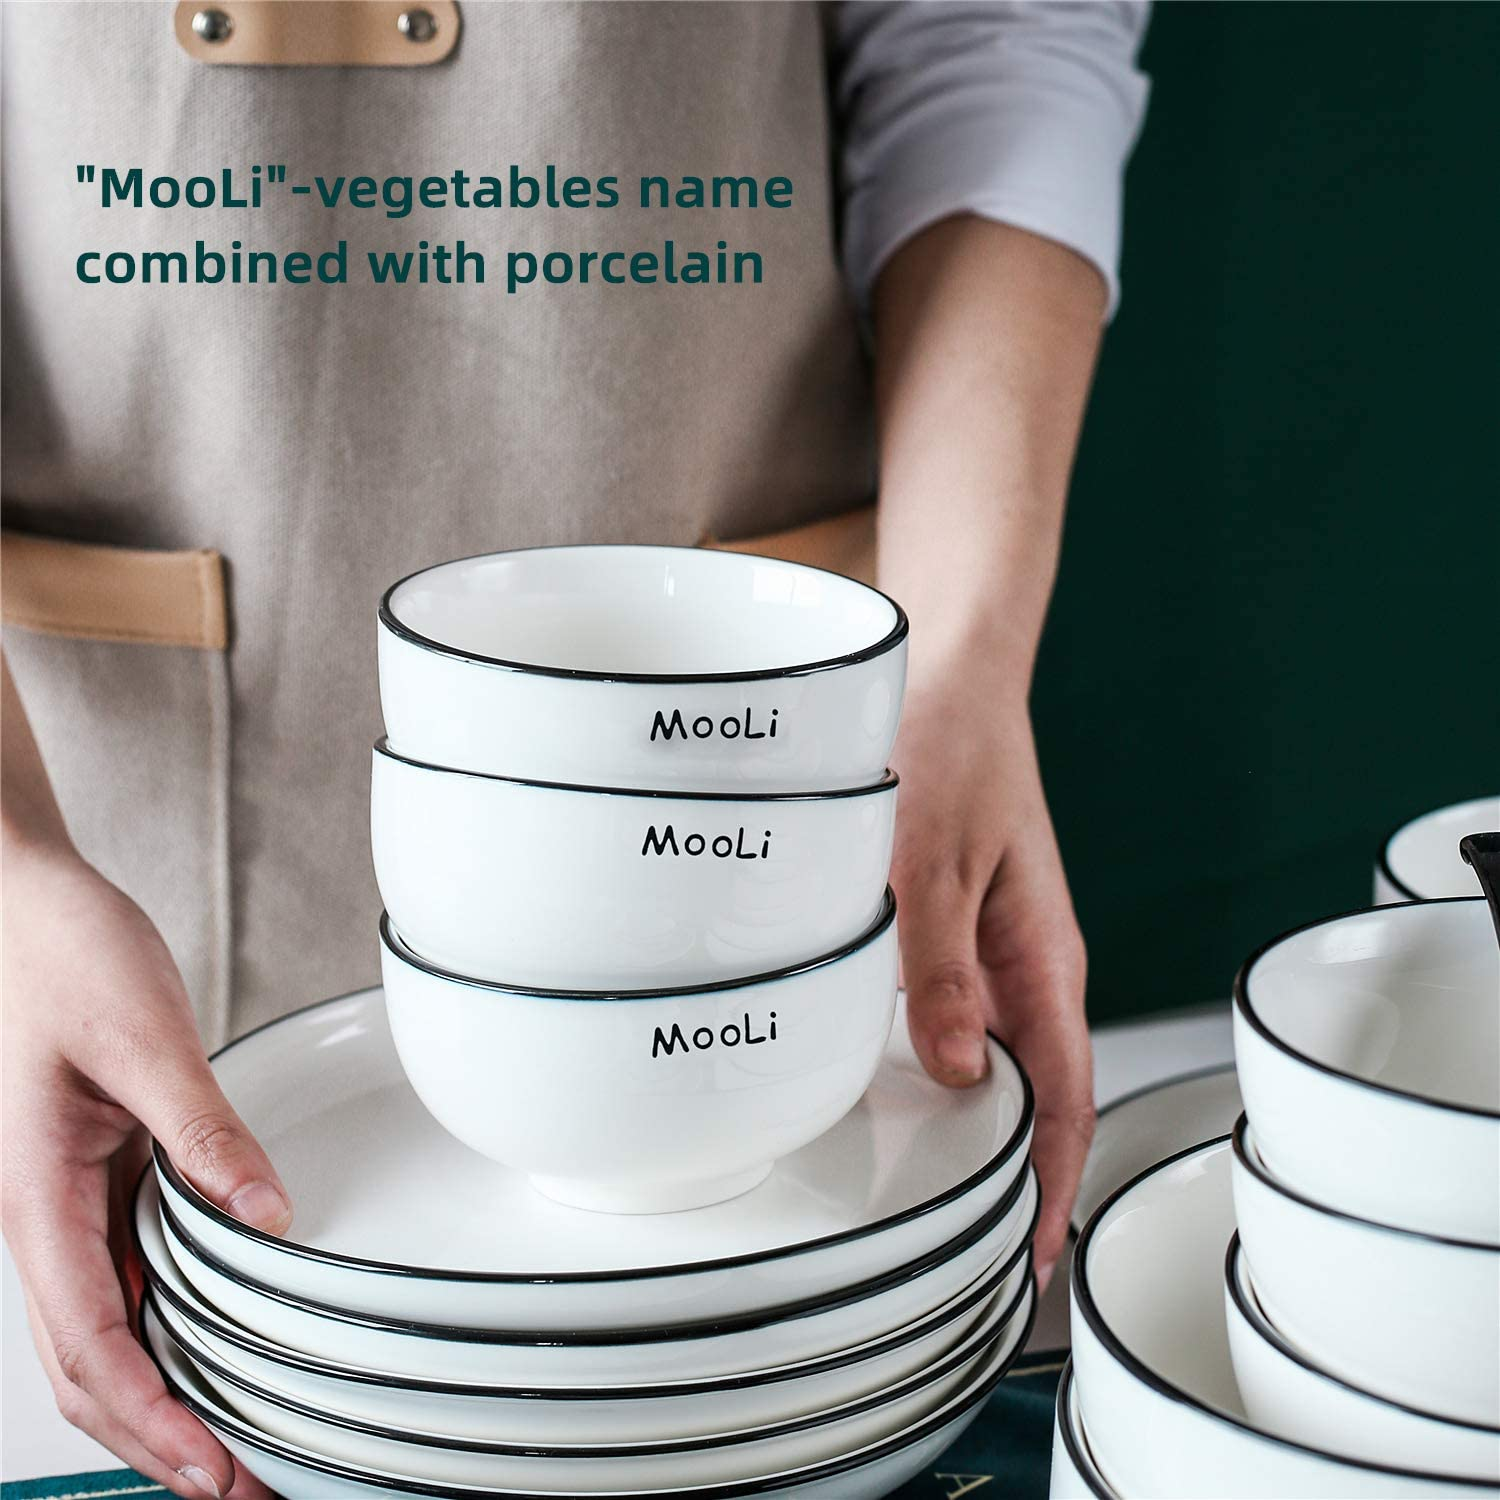 GDCZ Porcelain Rice Soup Bowls Set of 8 10oz Ceramic Stackable Round Cereal Ice Cream Bowl 4.5-inch White